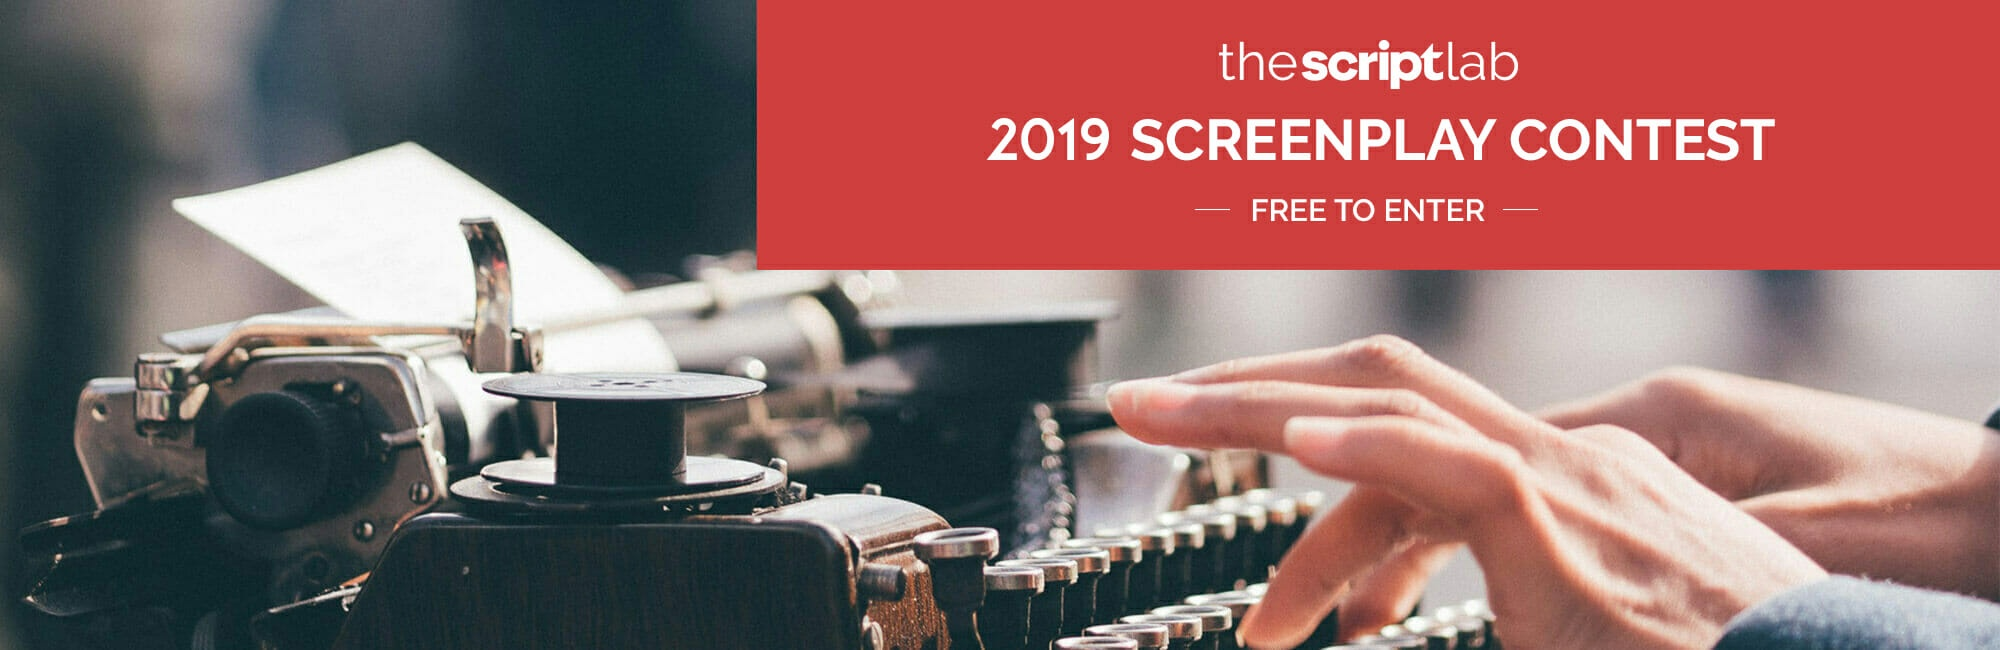 5 Free Resources for Emerging Screenwriters